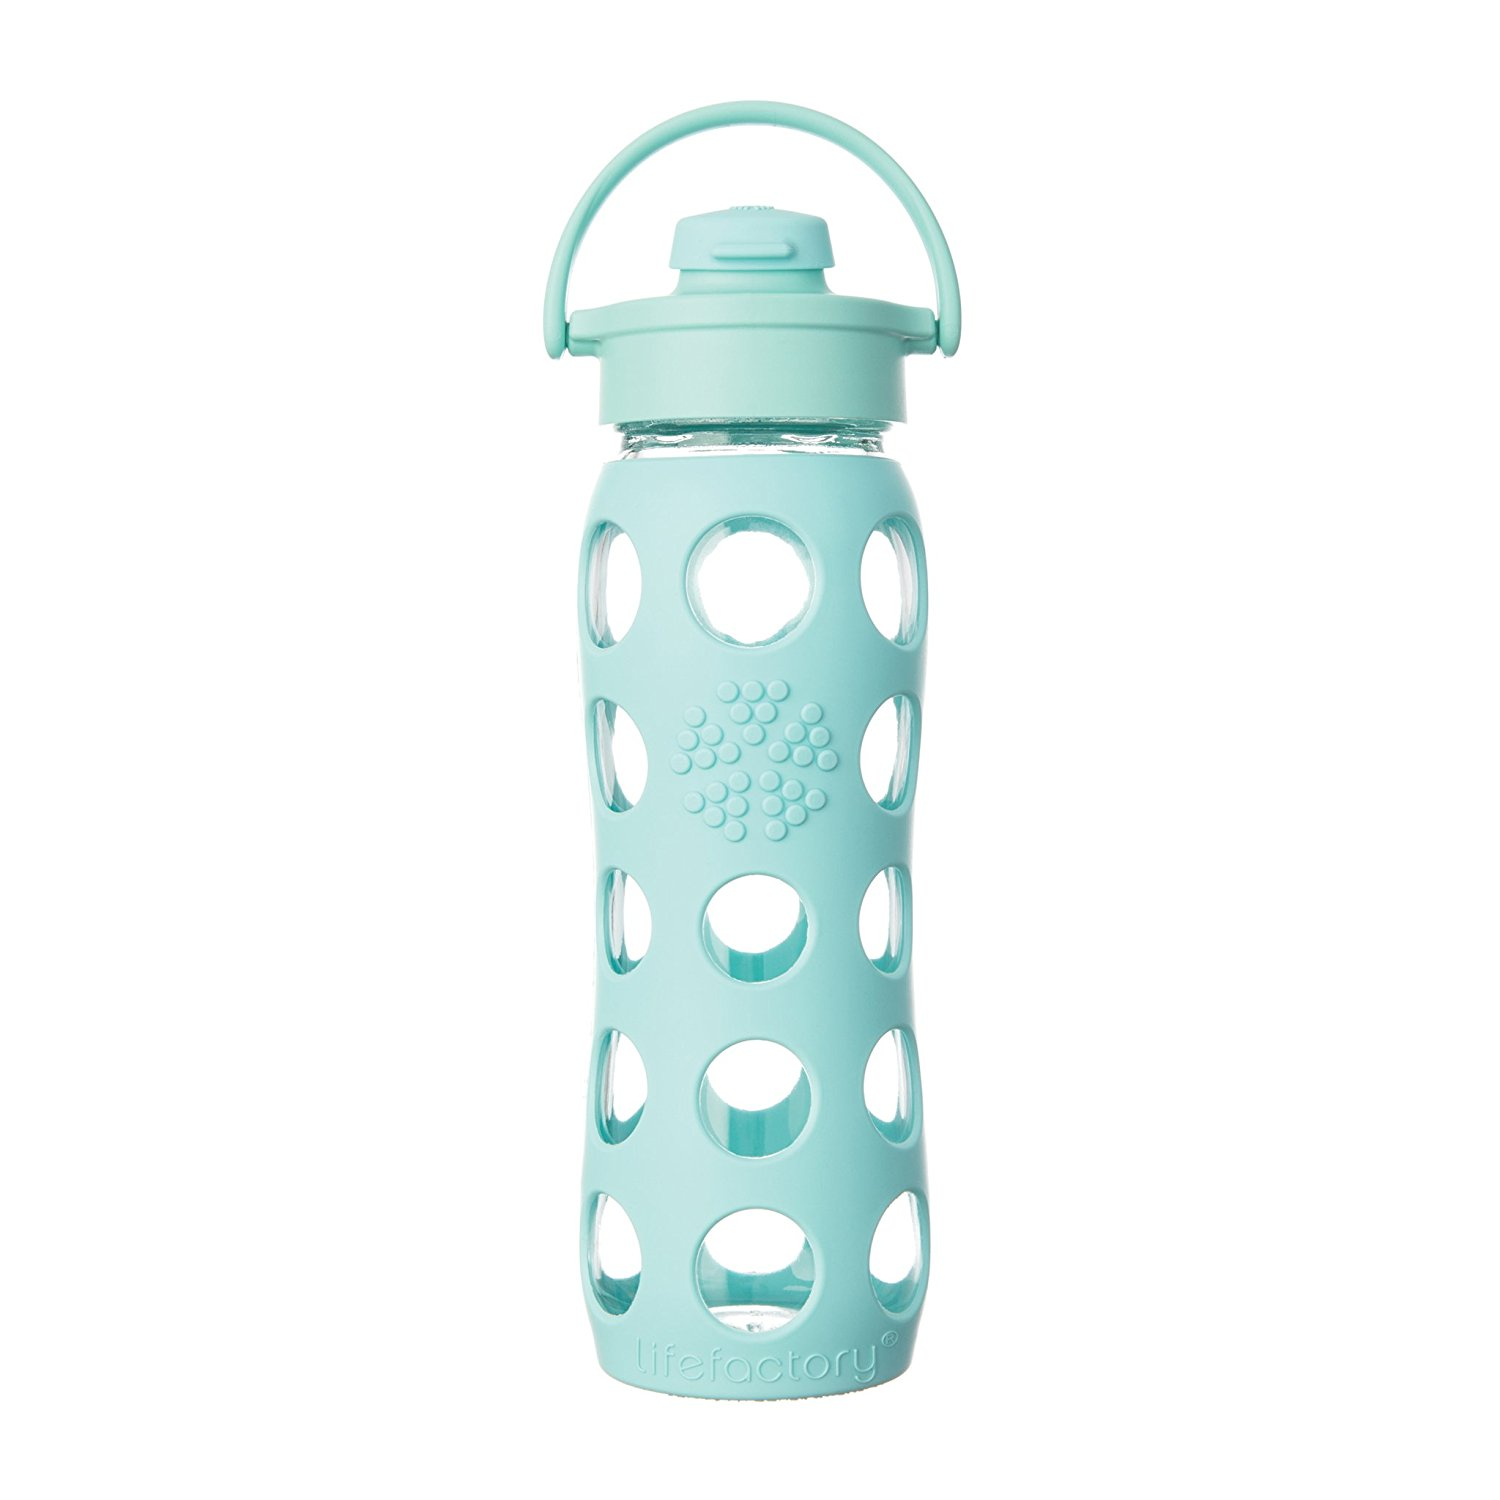 Life Factory Glass/Silicon Water Bottle Image